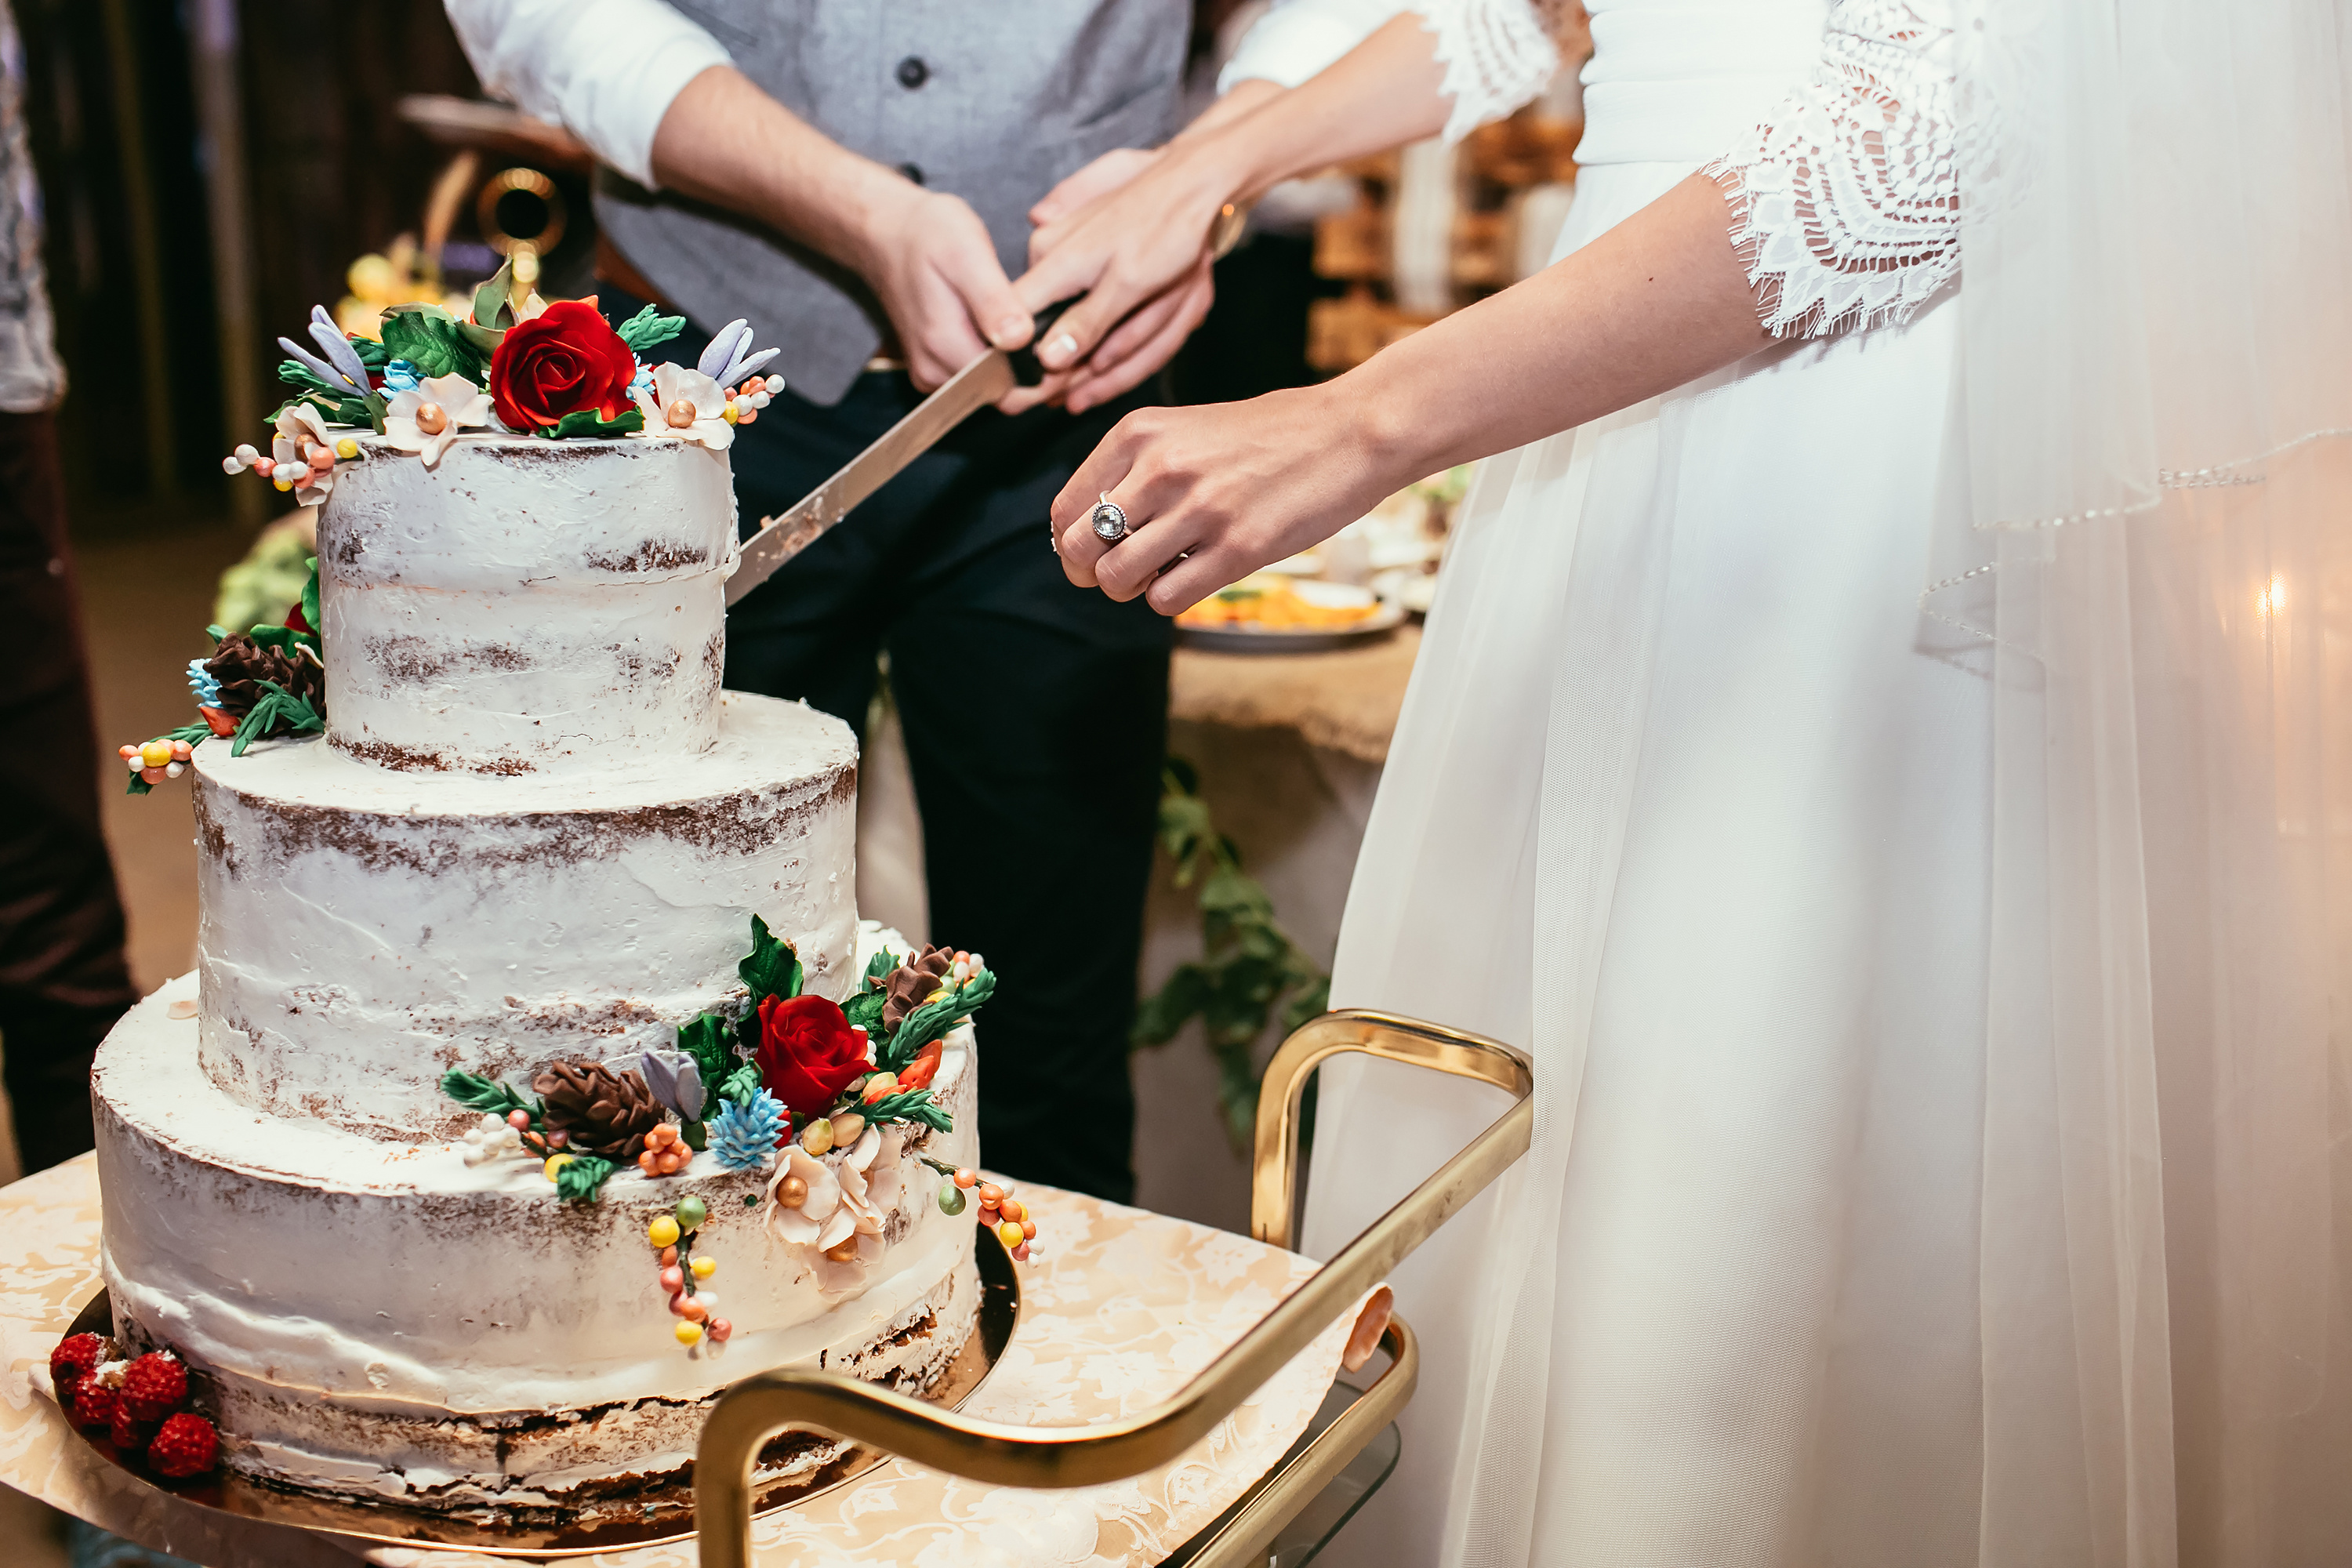 bride and groom cut rustic wedding cake on wedding banquet with